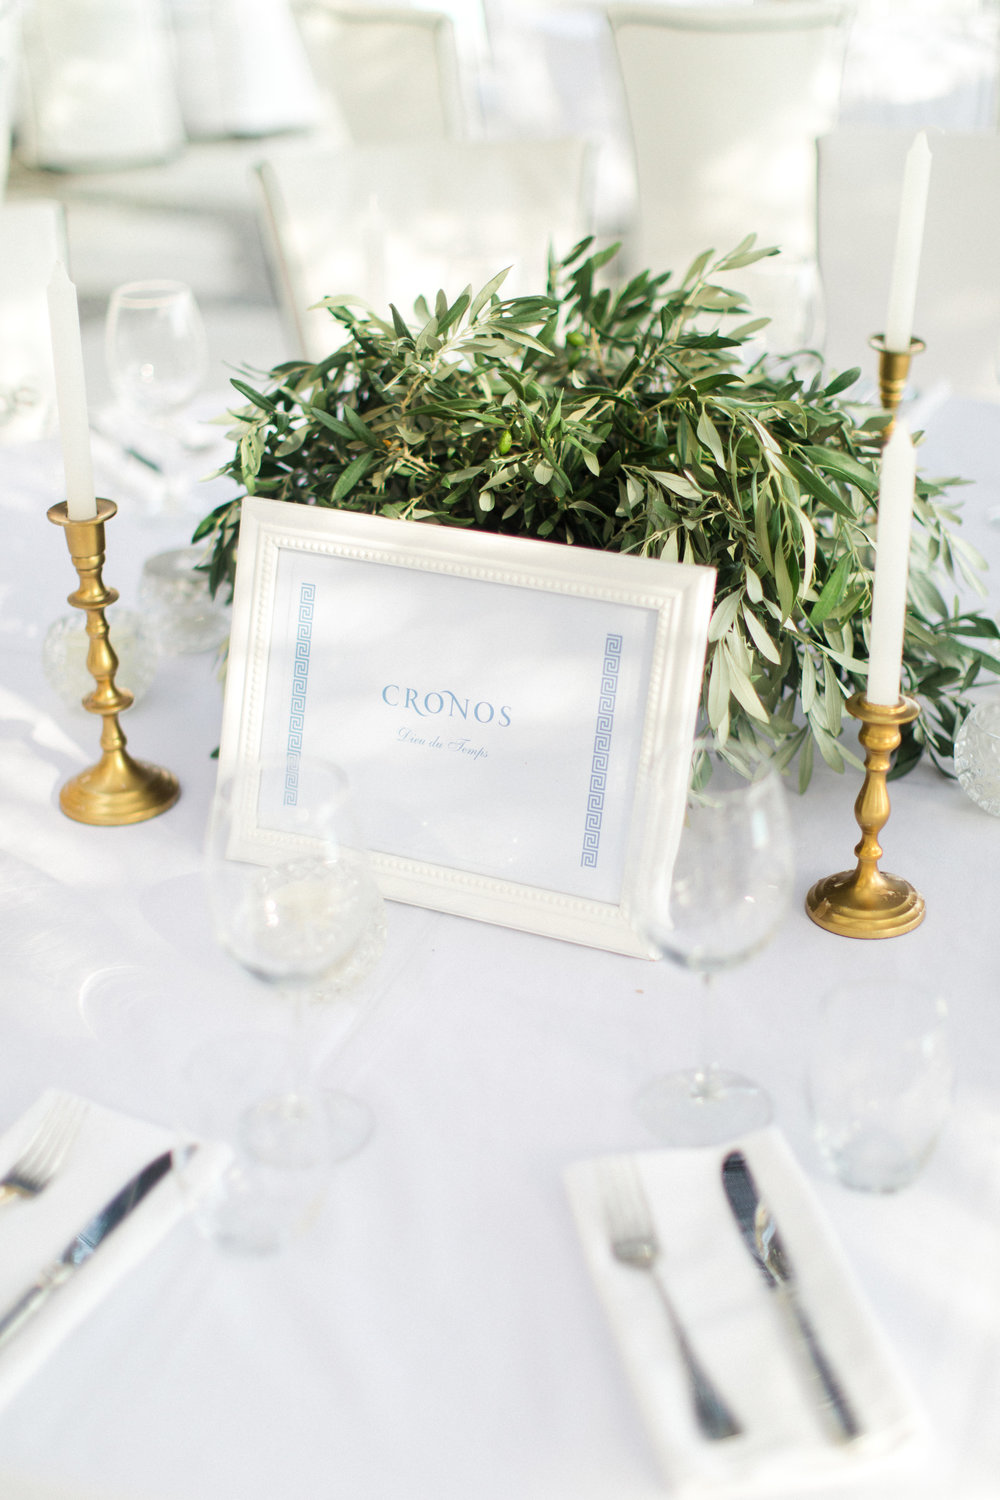 wedding-greek-theme-mythology-table-numbers-meandrous-table-arrangements-olive-branches-event-planning-silkentile-firm-royal-imperial-myconian-collection